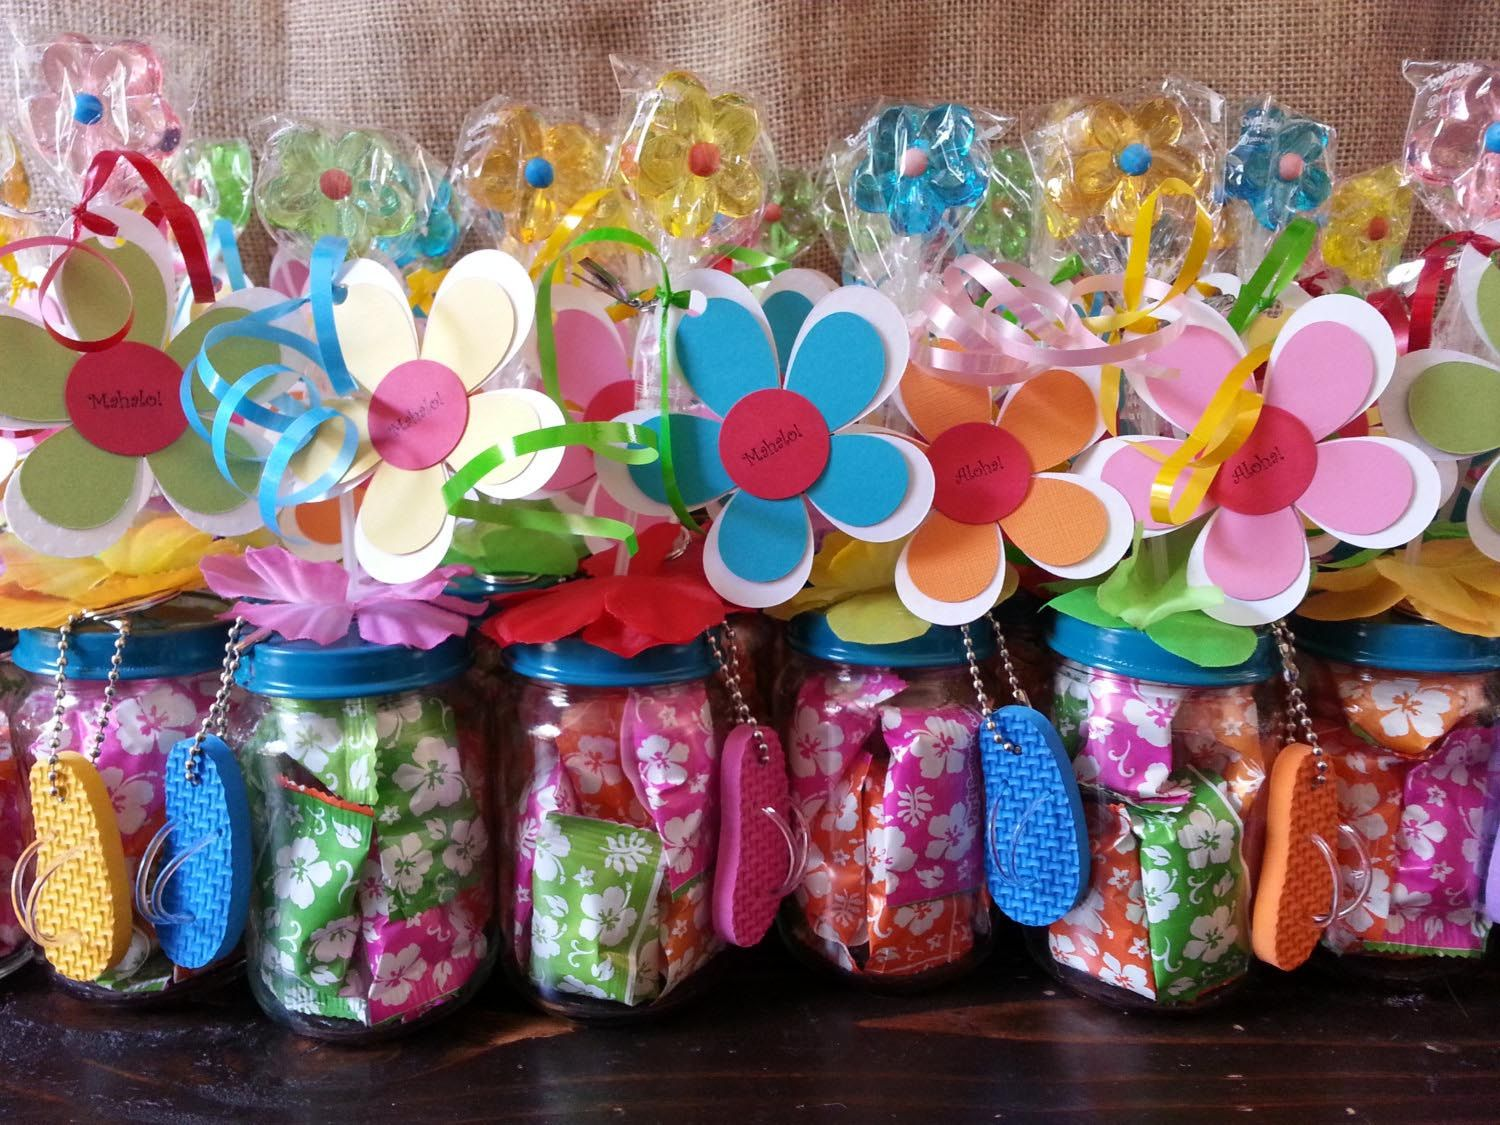 Childrens Wedding Gifts: Useful Kids Party Favors